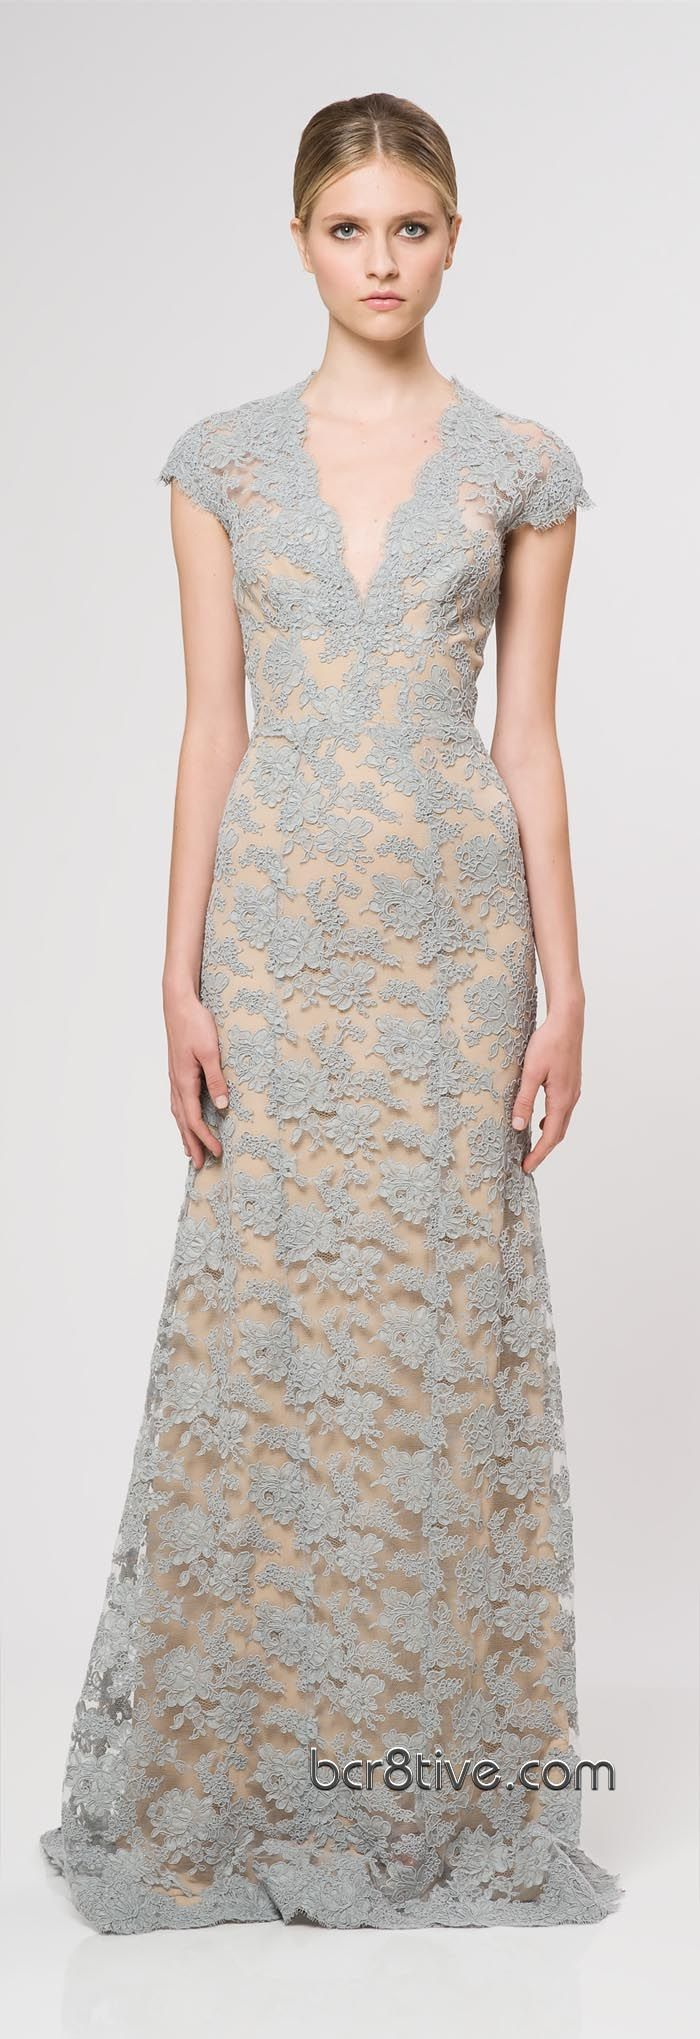 Reem Acra Ready To Wear Resort 2013..buat ke kondangan 2013